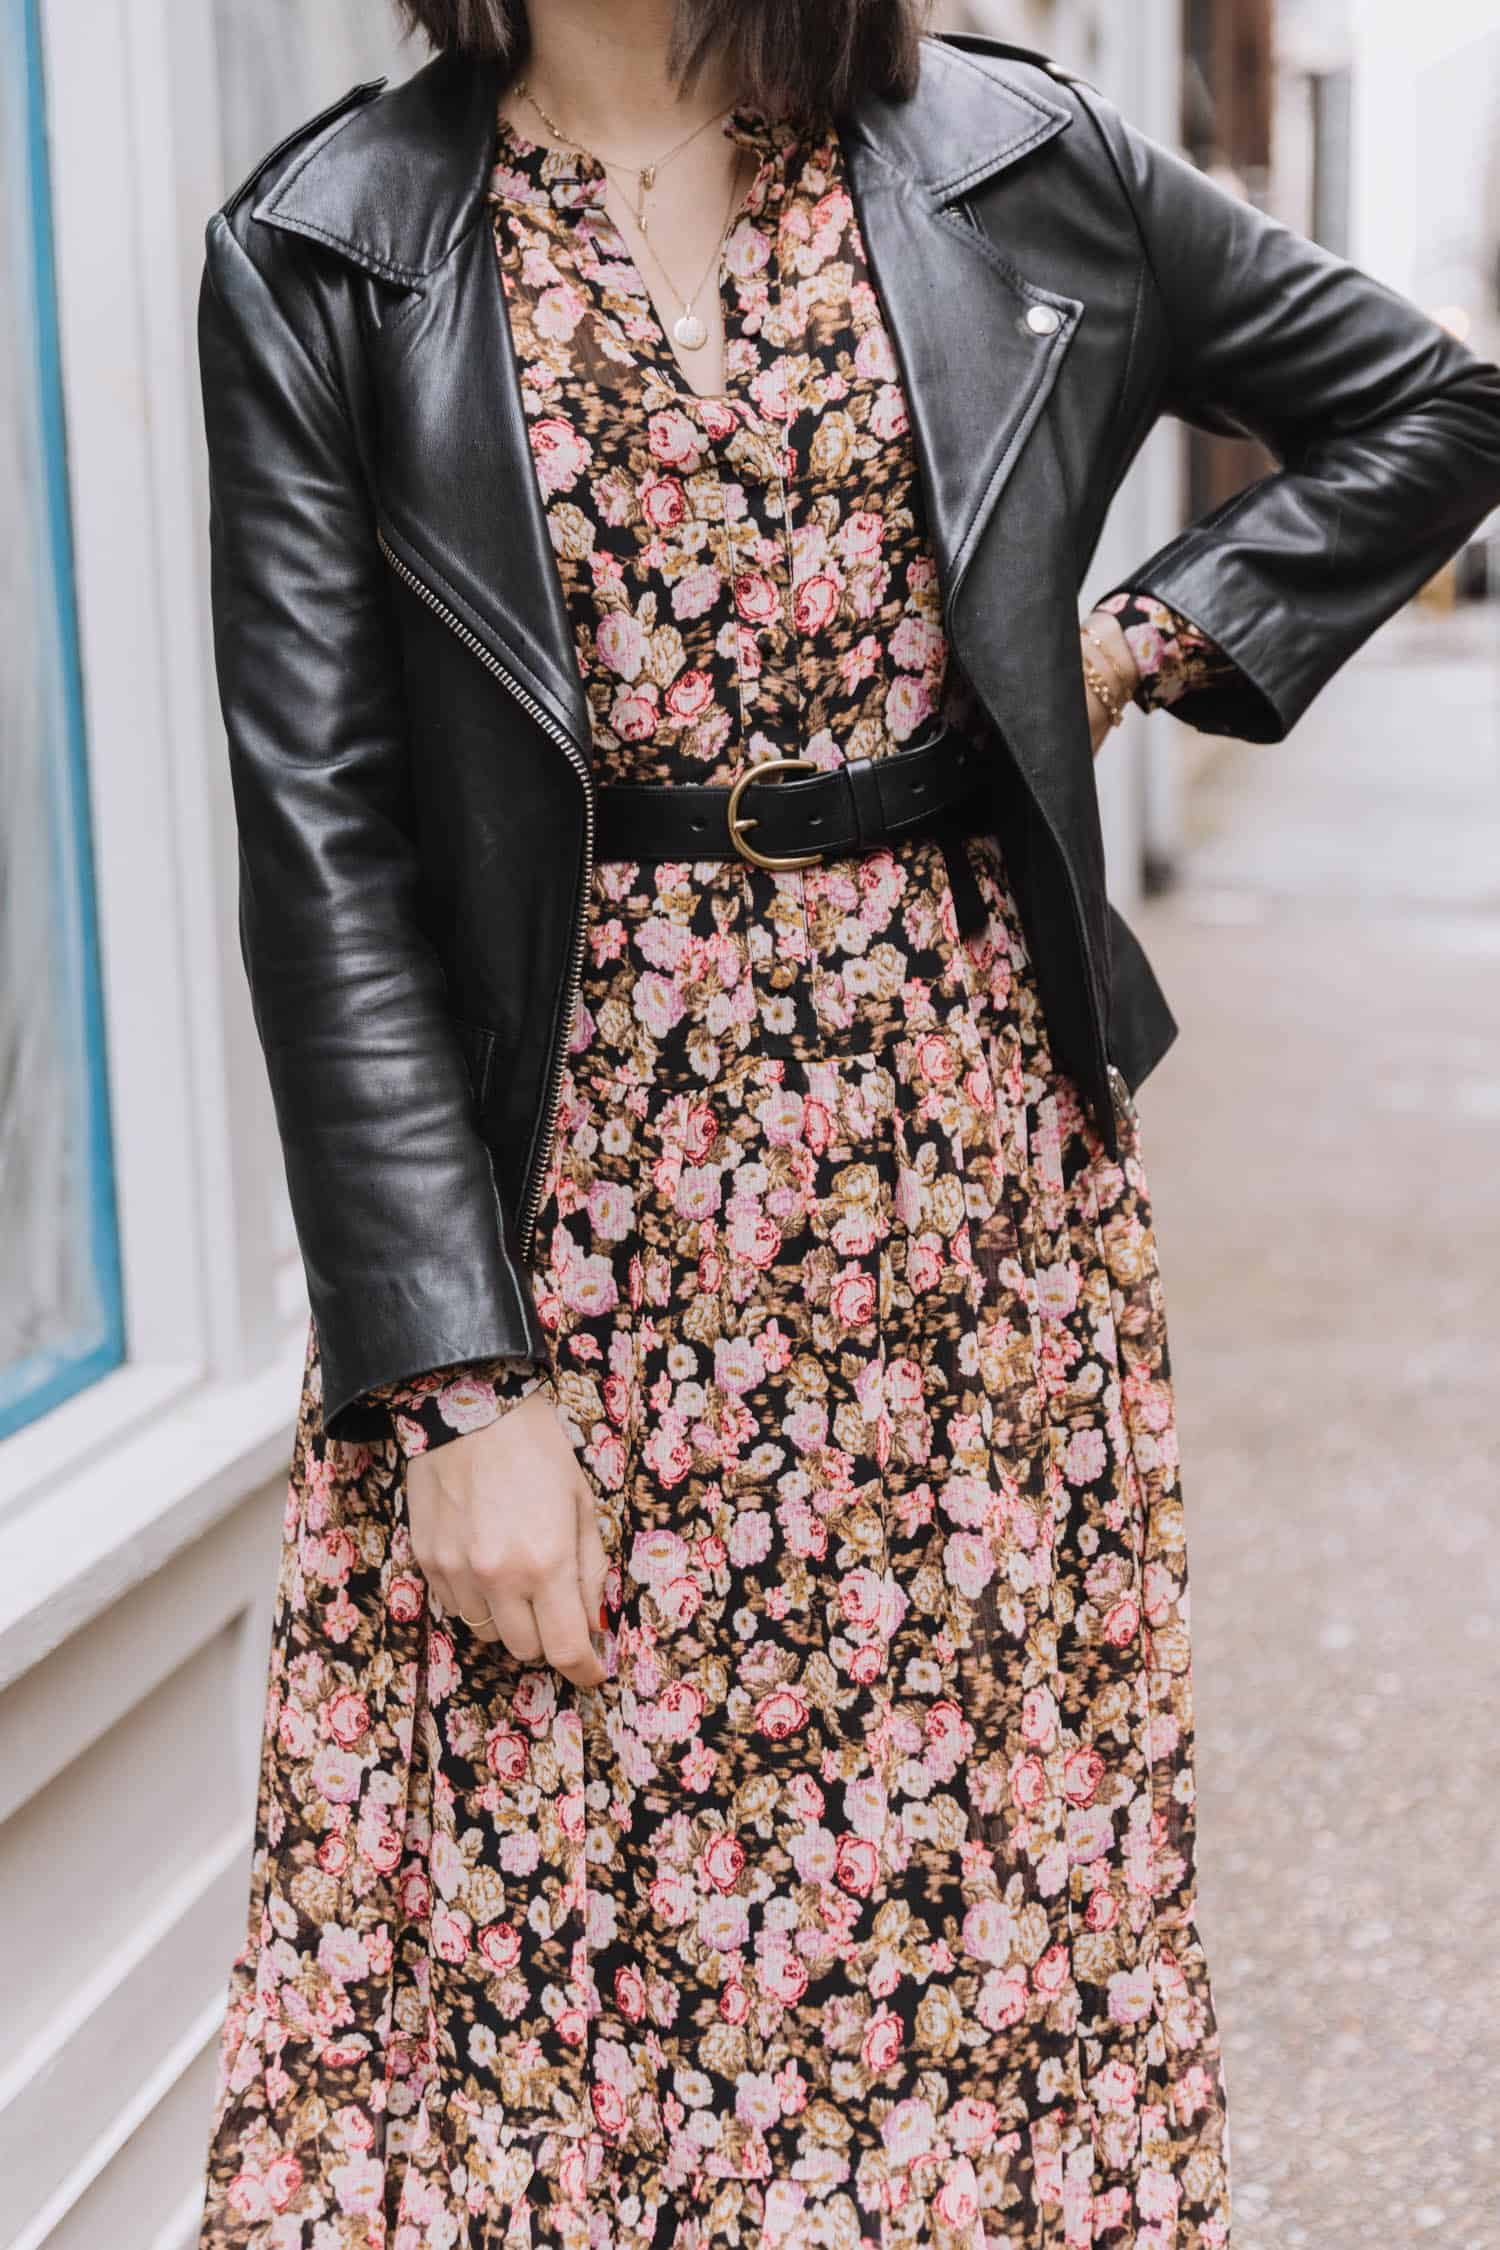 The Best Floral Dresses To Transition Into Spring With